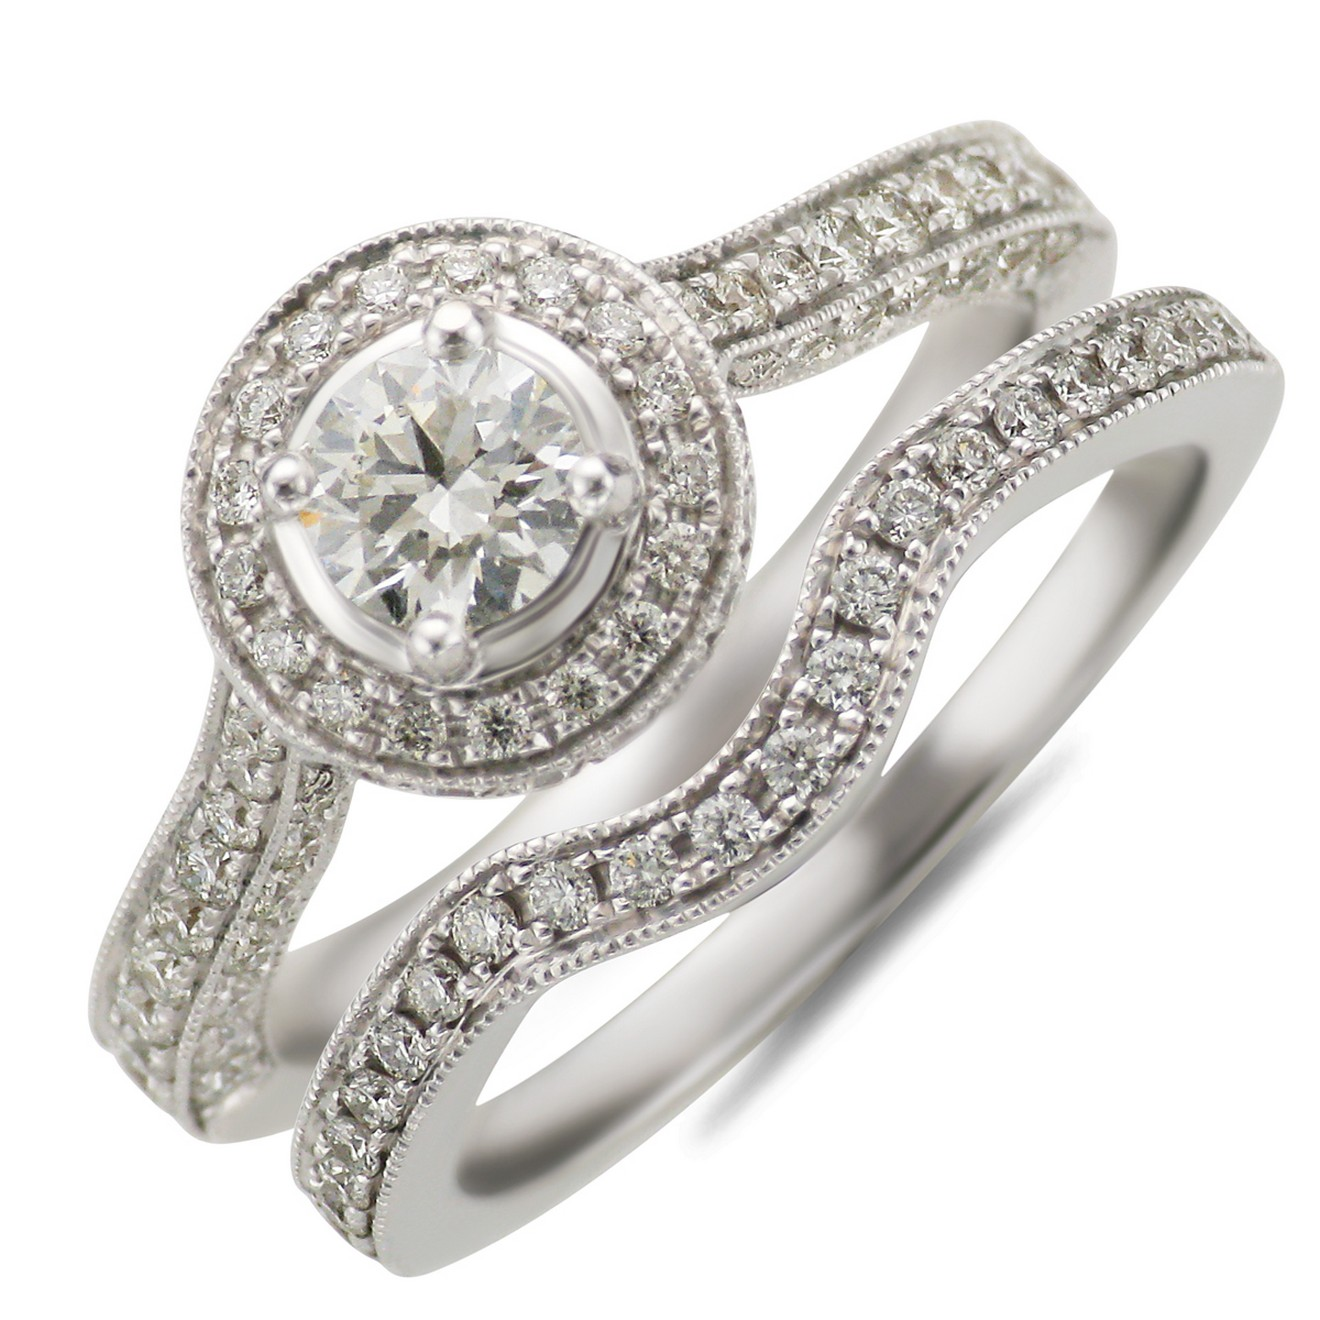 Ebay Diamond Wedding Ring Sets 7 Gorgeous Ebay Wedding Rings Sets